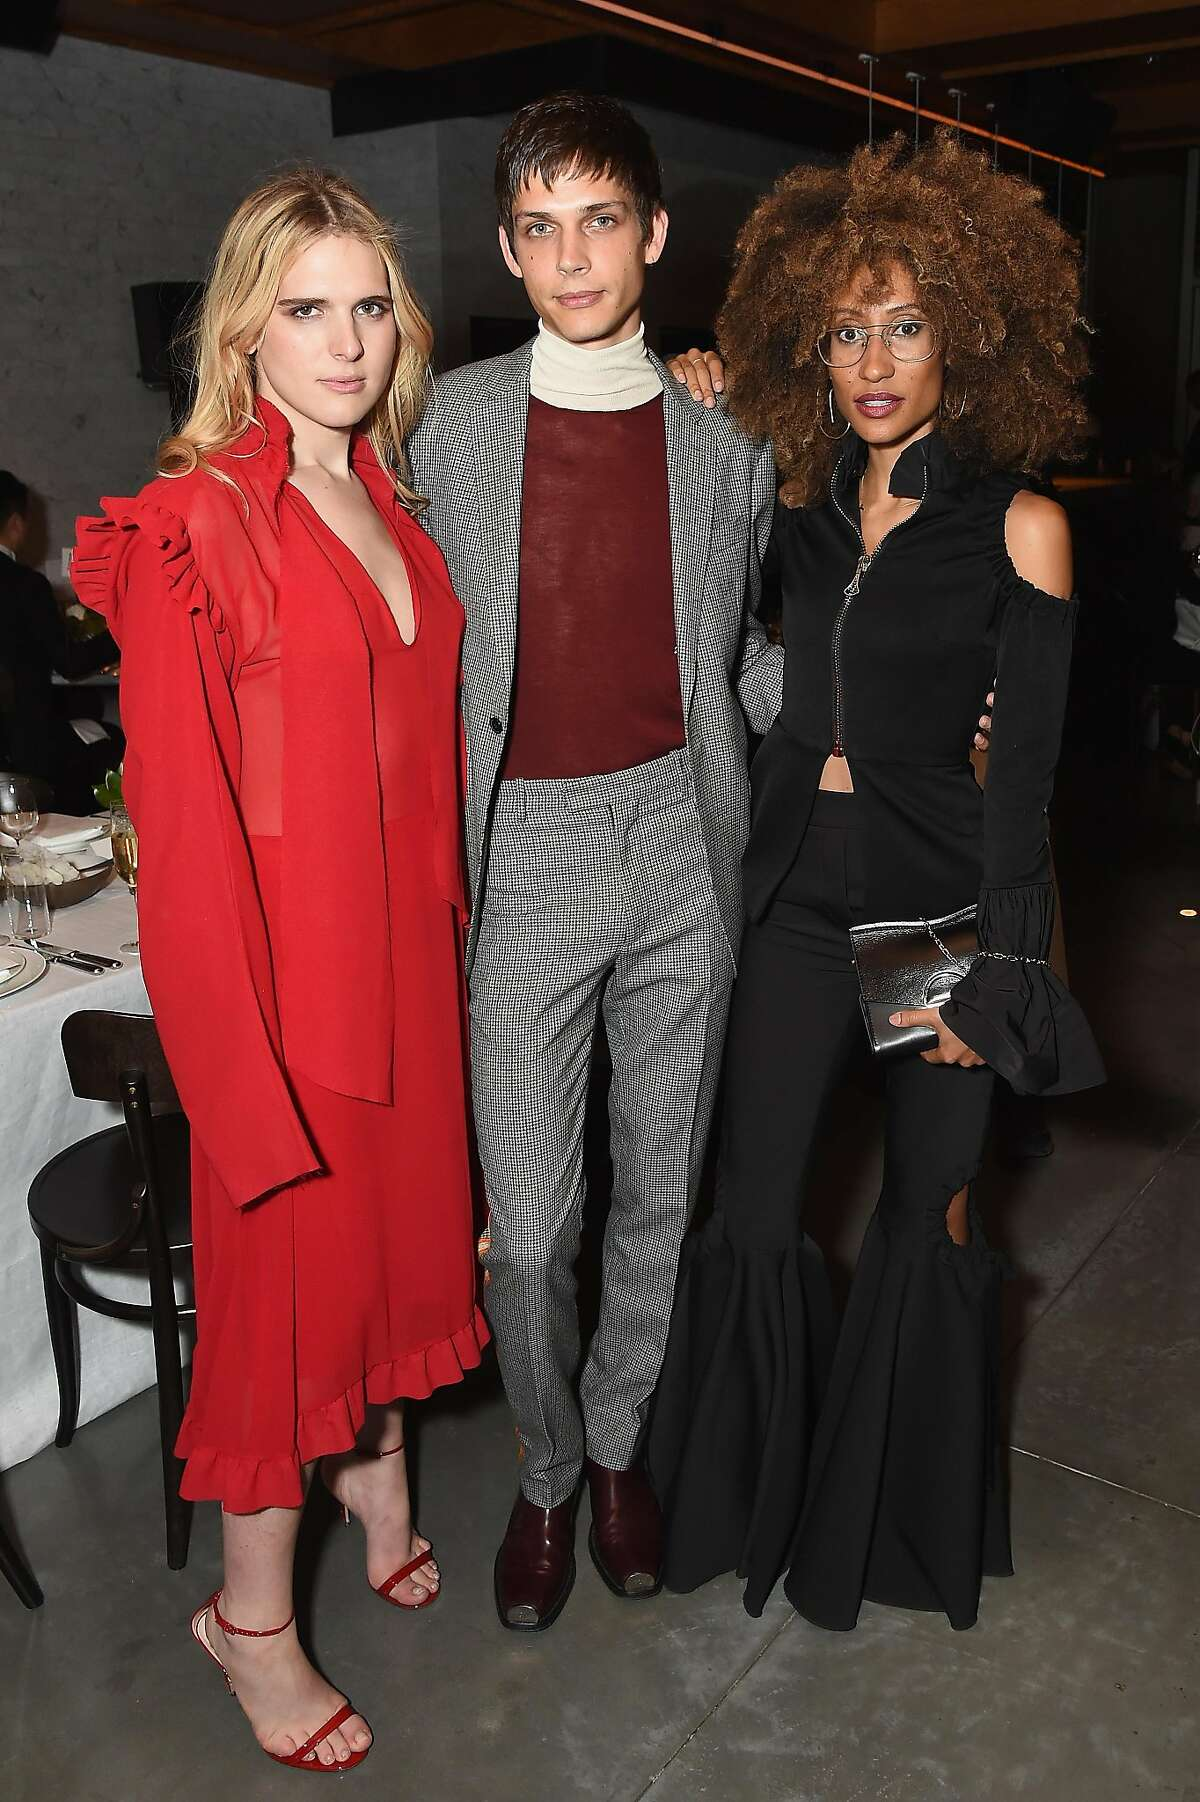 NEW YORK, NY - SEPTEMBER 09: Hari Nef (L) and Elaine Welteroth (R) attend the #BoF500 party during New York Fashion Week Spring/Summer 2018 at Public Hotel on September 9, 2017 in New York City. (Photo by Nicholas Hunt/Getty Images for The Business of Fashion)